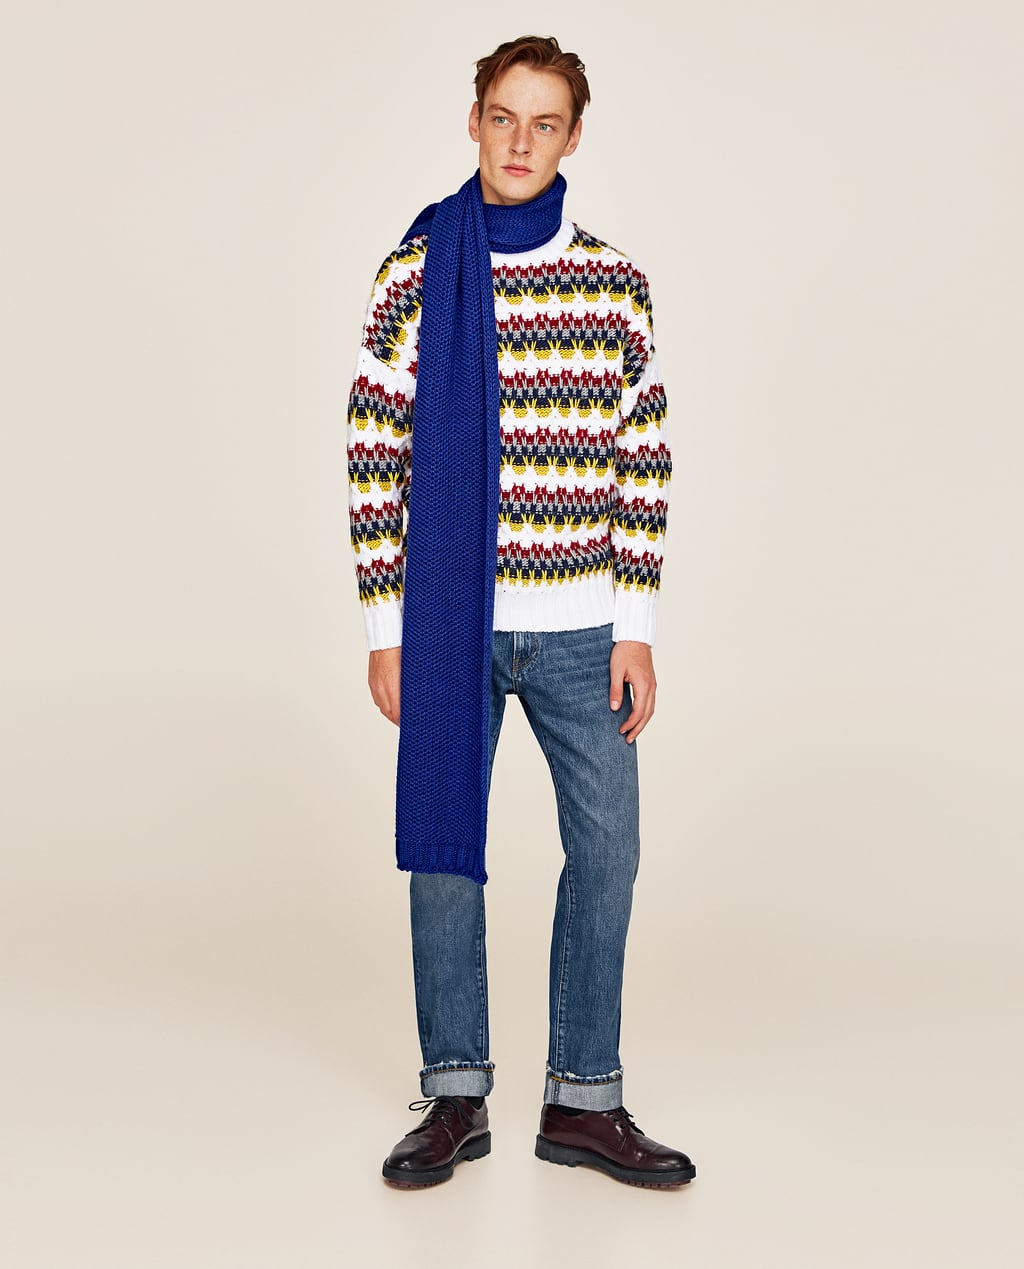 COLOURFUL JACQUARD SWEATER - View All-KNITWEAR AND CARDIGANS-MAN ...